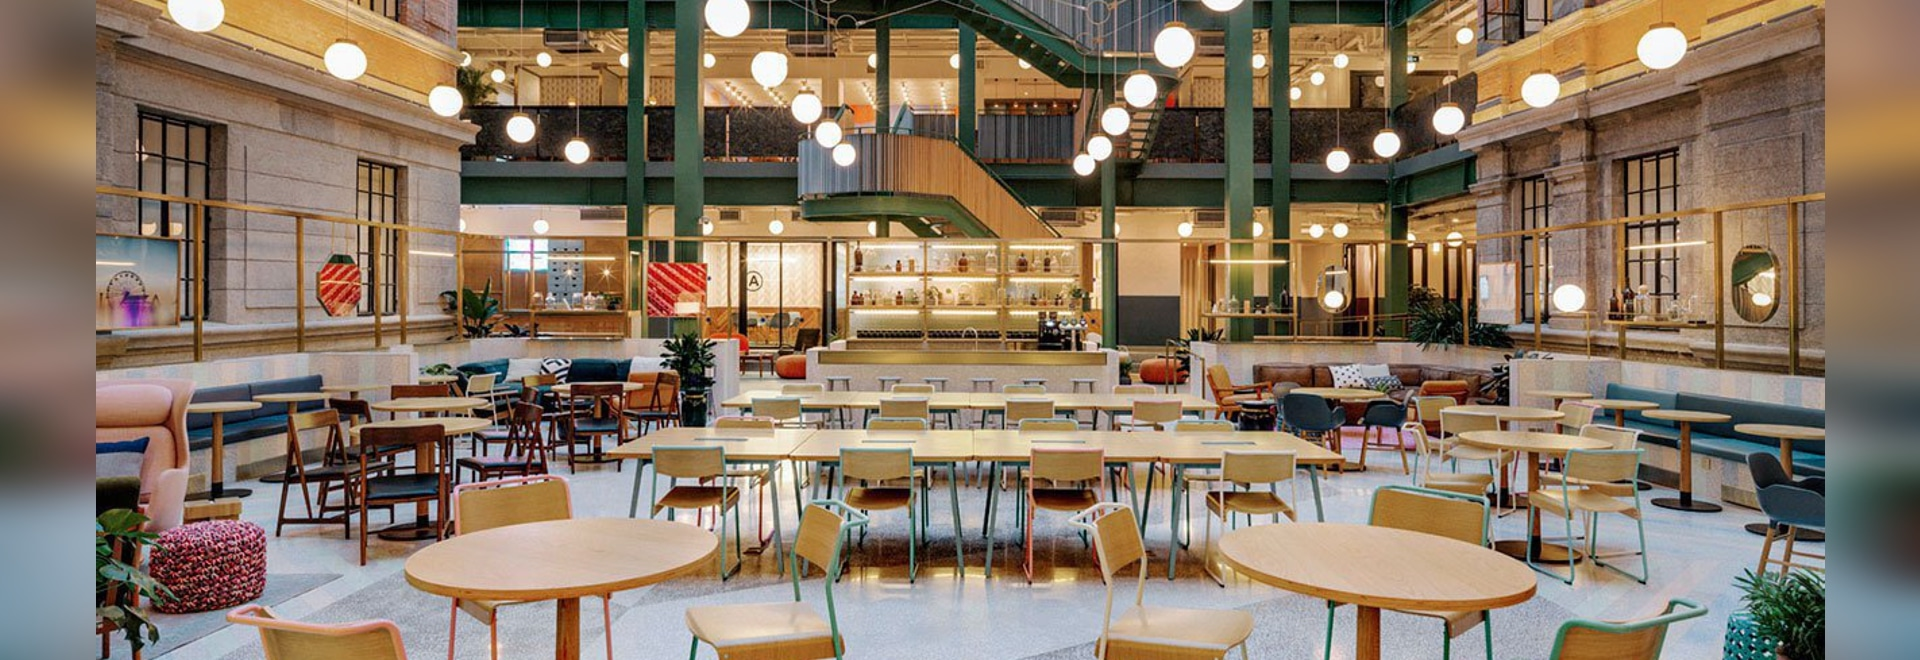 Linehouse Brings Color and Fun to the WeWork Offices in Shanghai, China